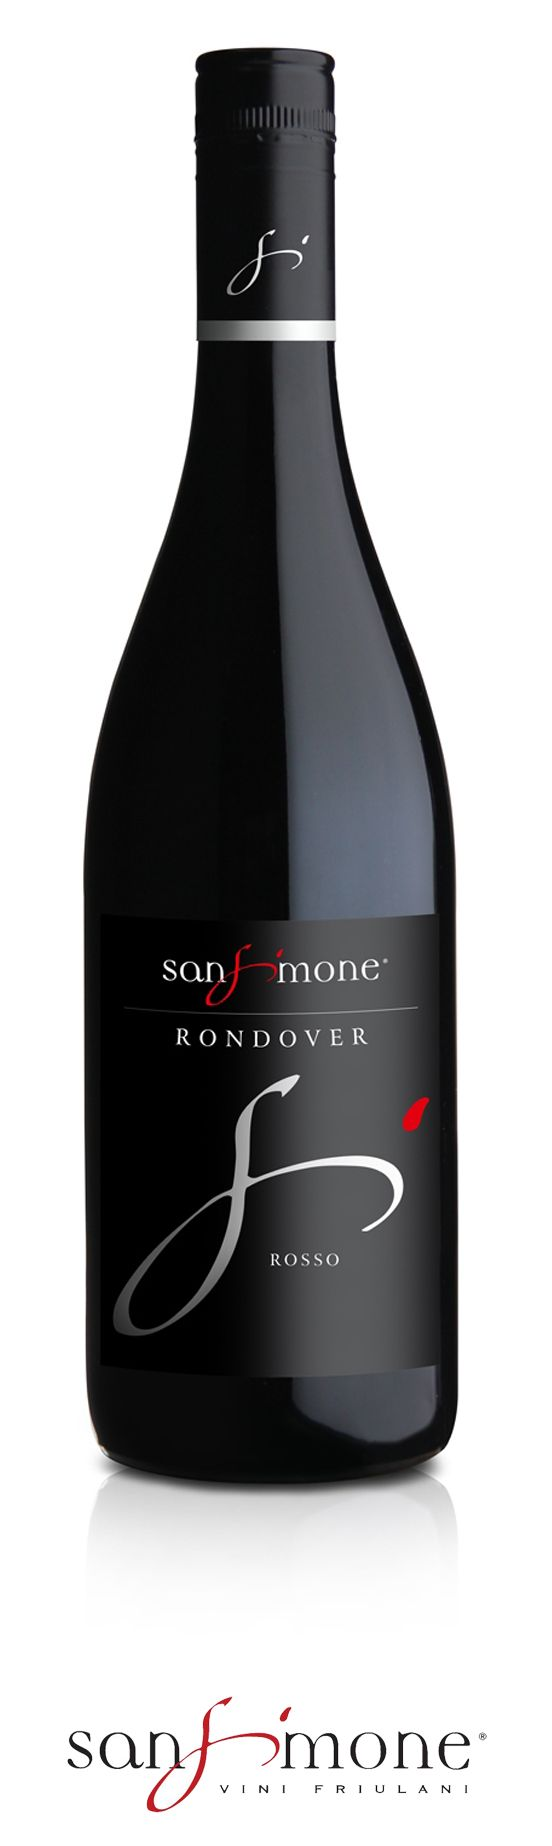 San Simone #RossoRondover  Colour: intense ruby red. Nose: delicate and vinous, with intense notes of wild berries,  reminiscent of raspberry, cherry and blackberry. Palate: dry, soft and harmonious, authenticates the expectations  originated through nose.